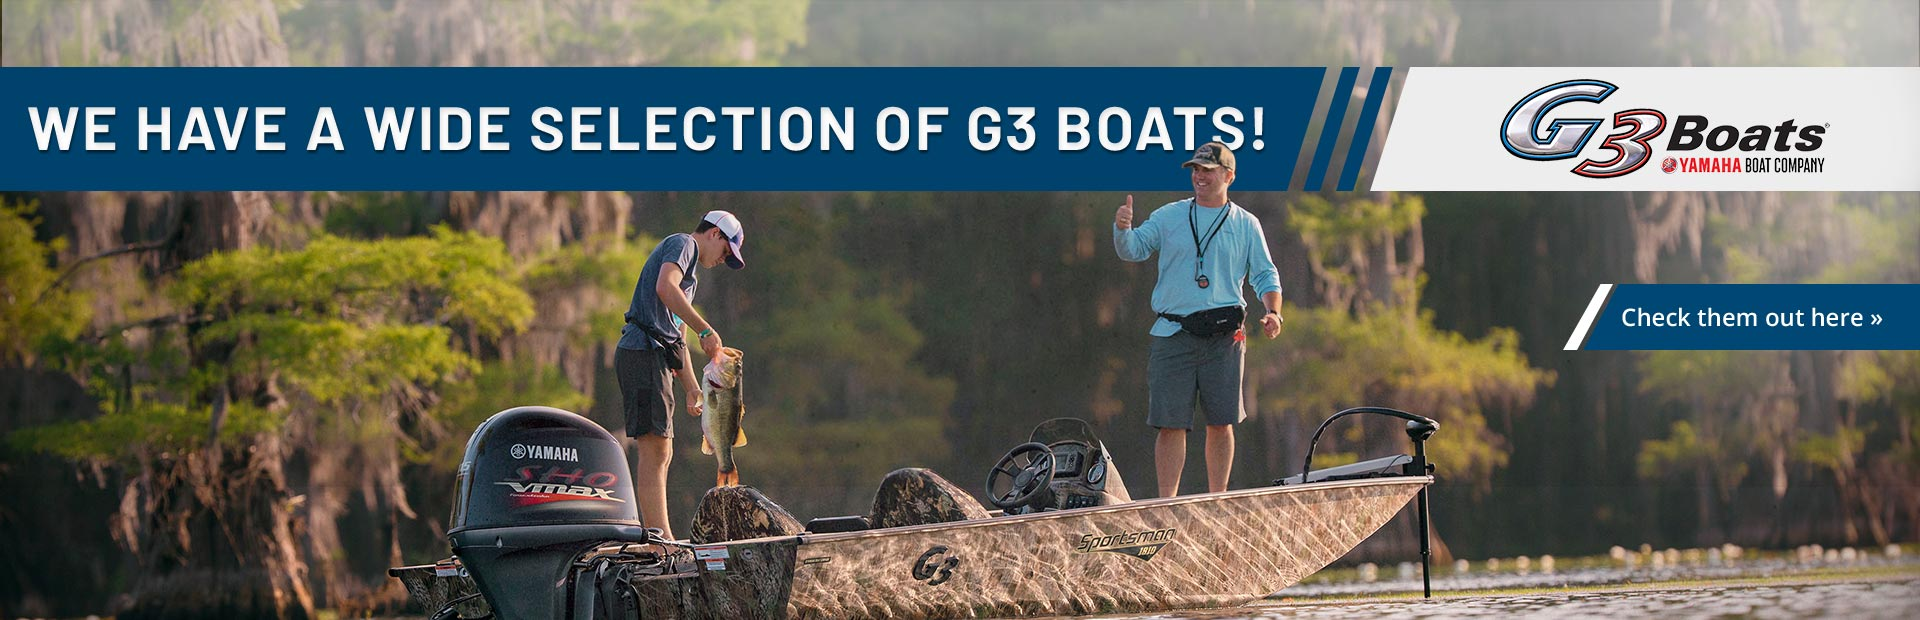 We have a wide selection of G3 boats! Click here to view the models.